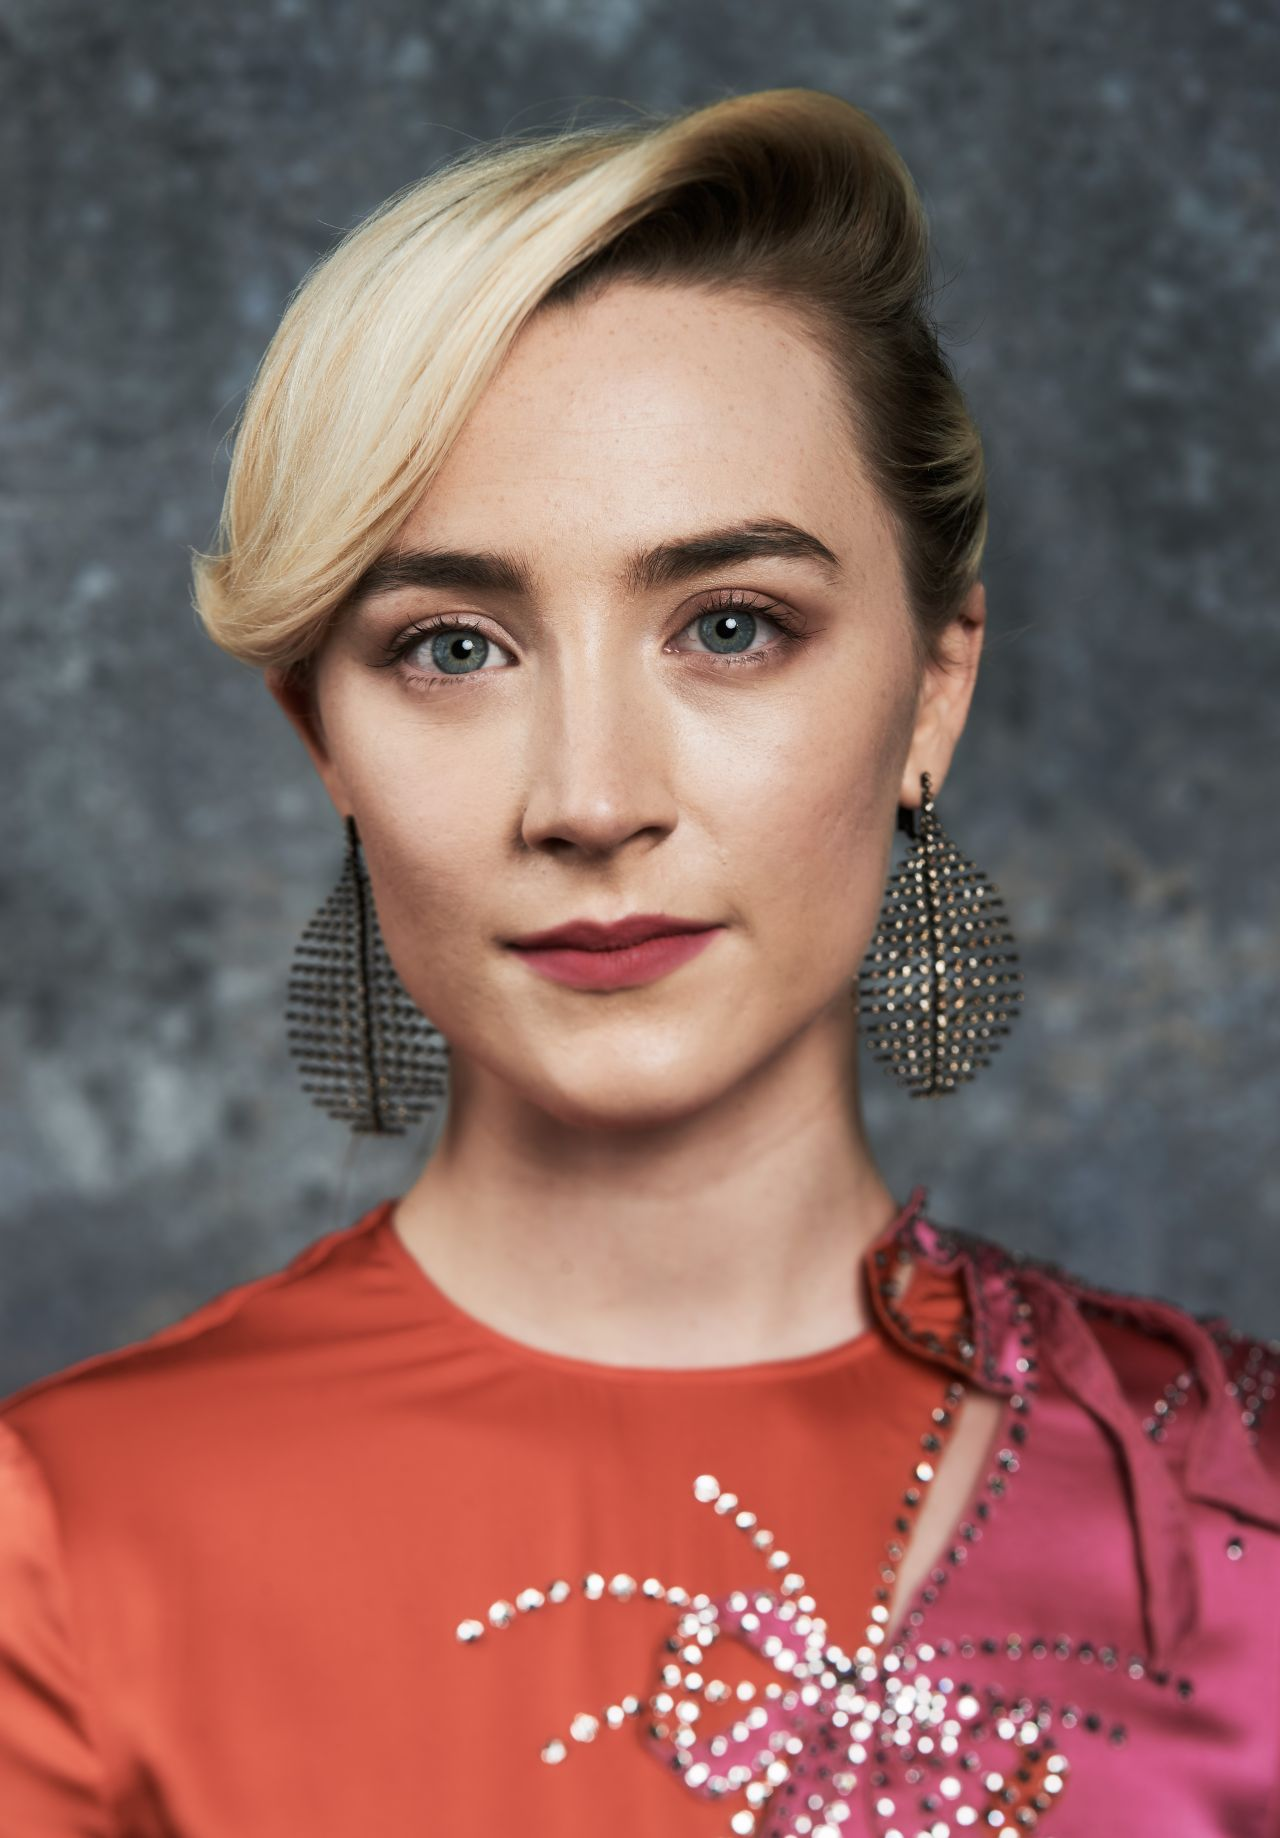 http://celebmafia.com/wp-content/uploads/2018/01/saoirse-ronan-palm-springs-international-film-festival-awards-gala-portrait-studio-3.jpg